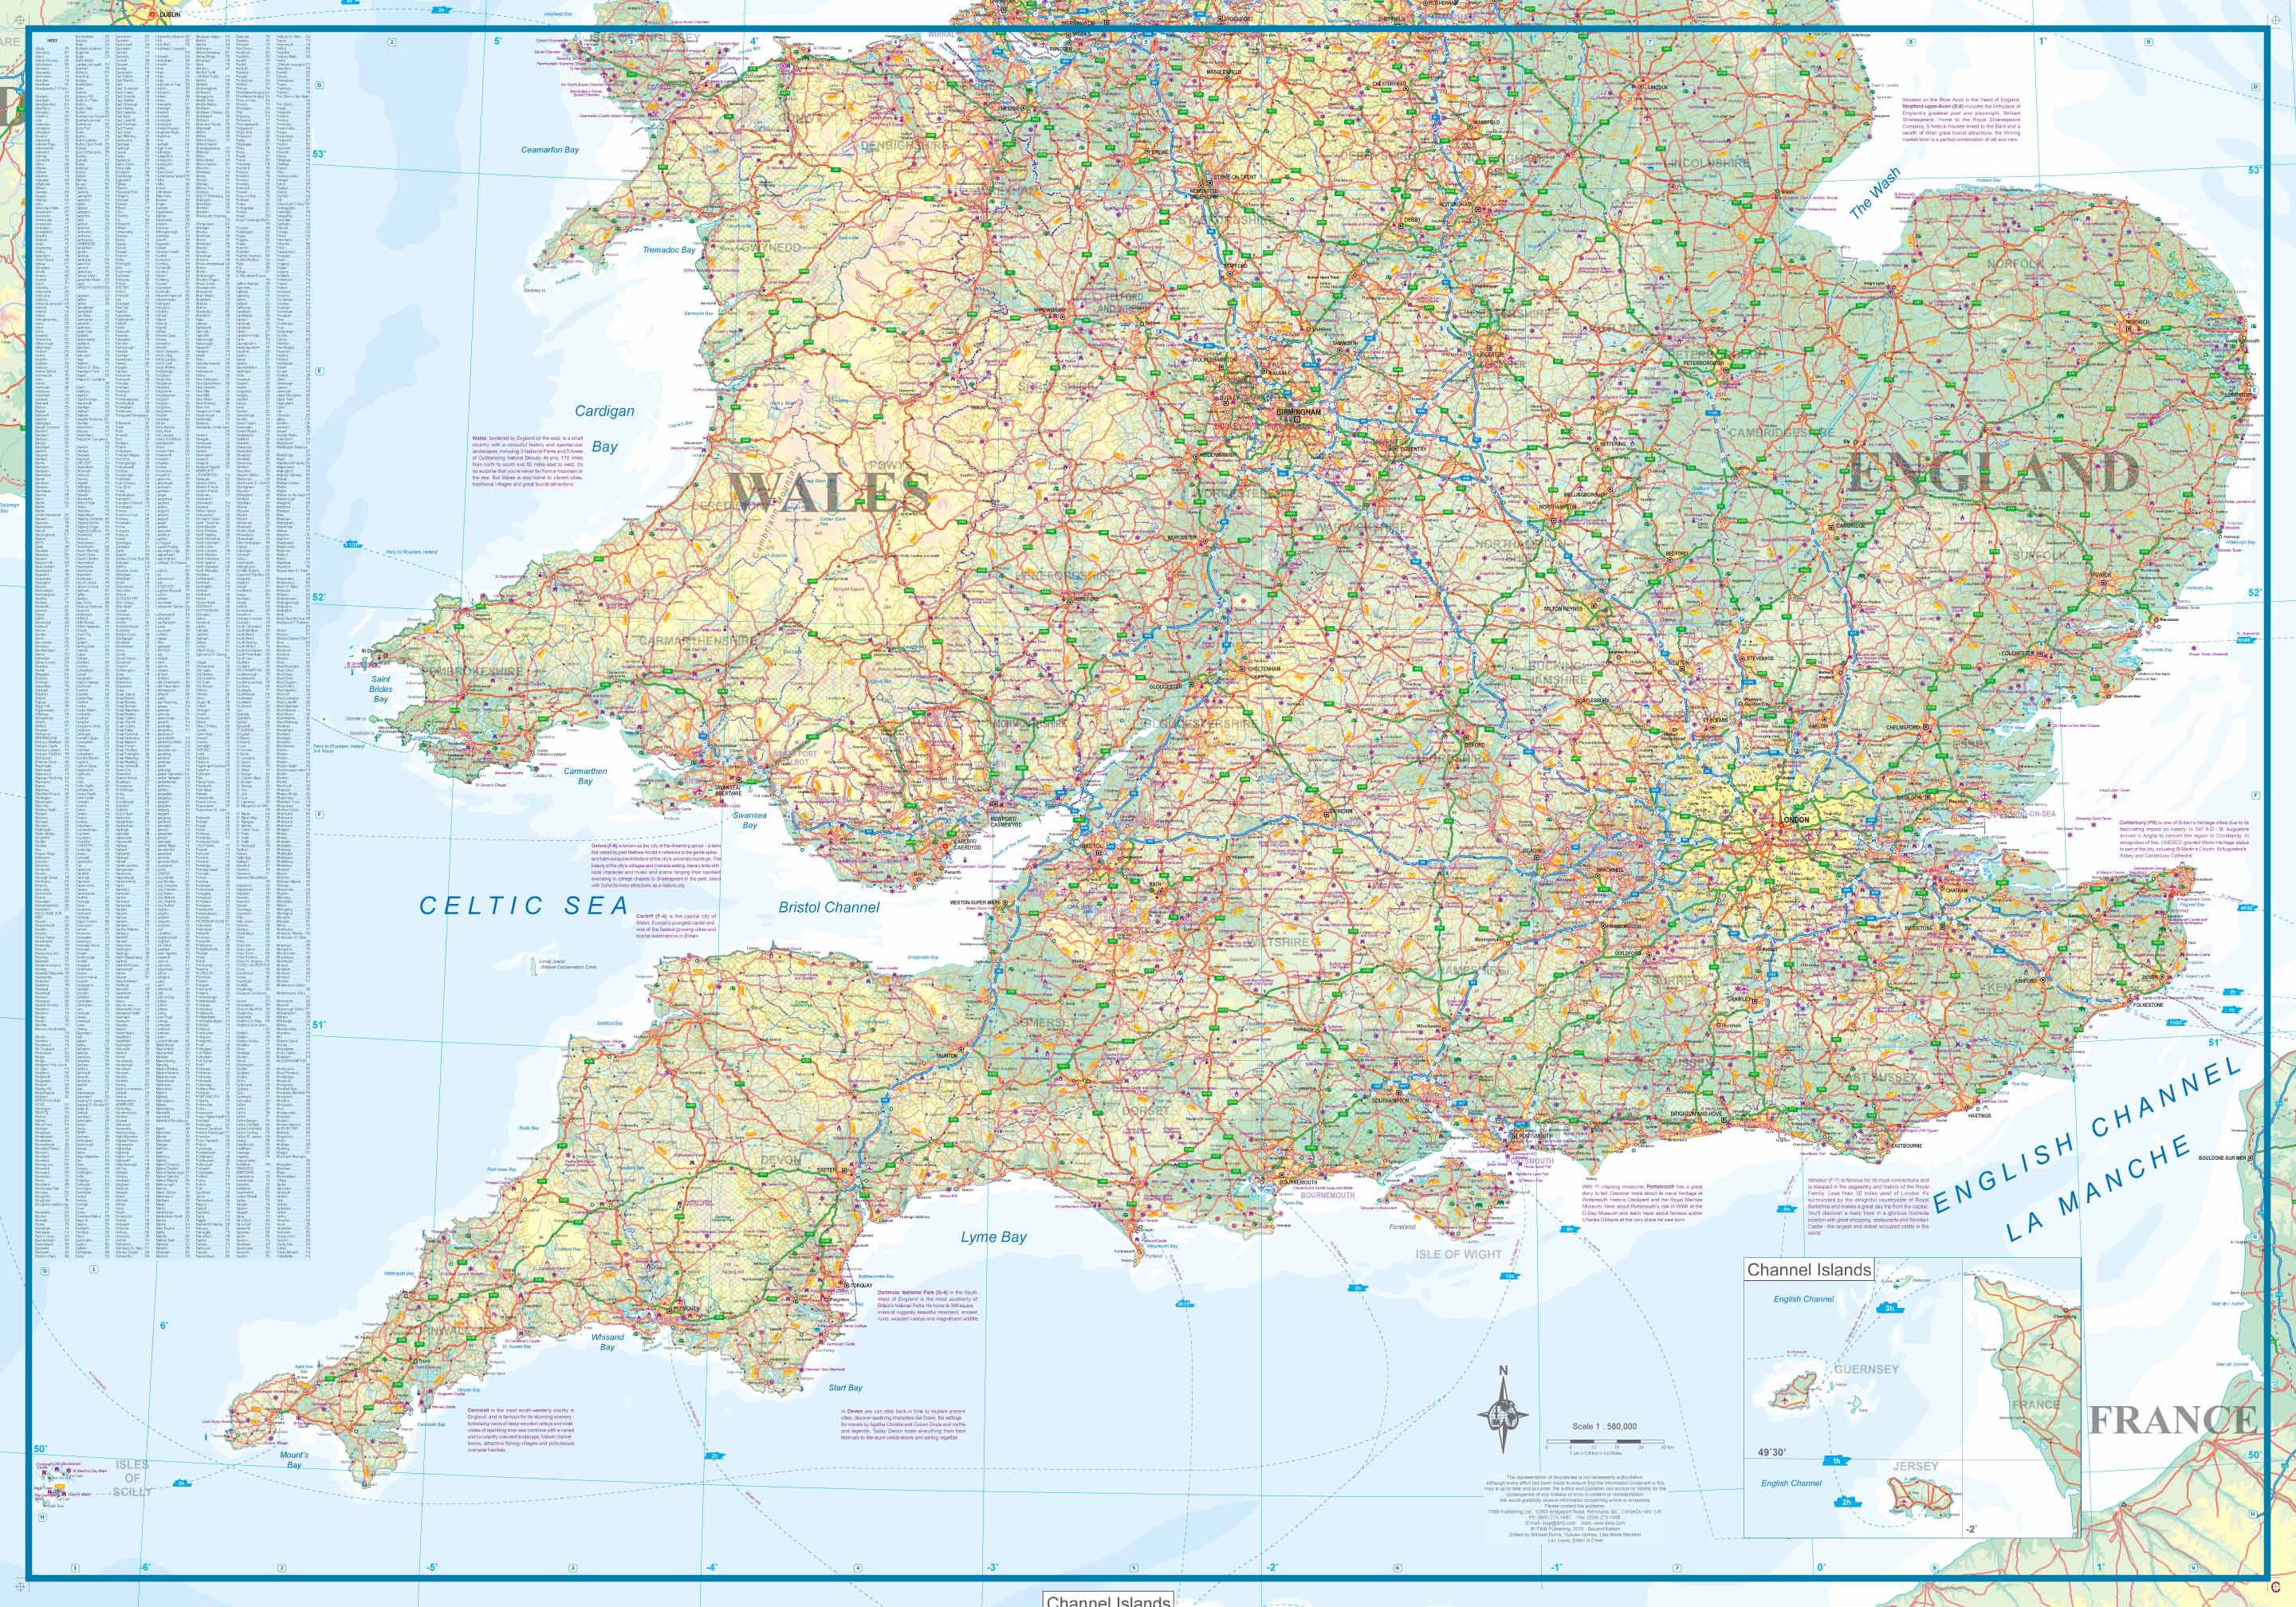 Maps For Travel City Maps Road Maps Guides Globes Topographic - Topographic map of united kingdom